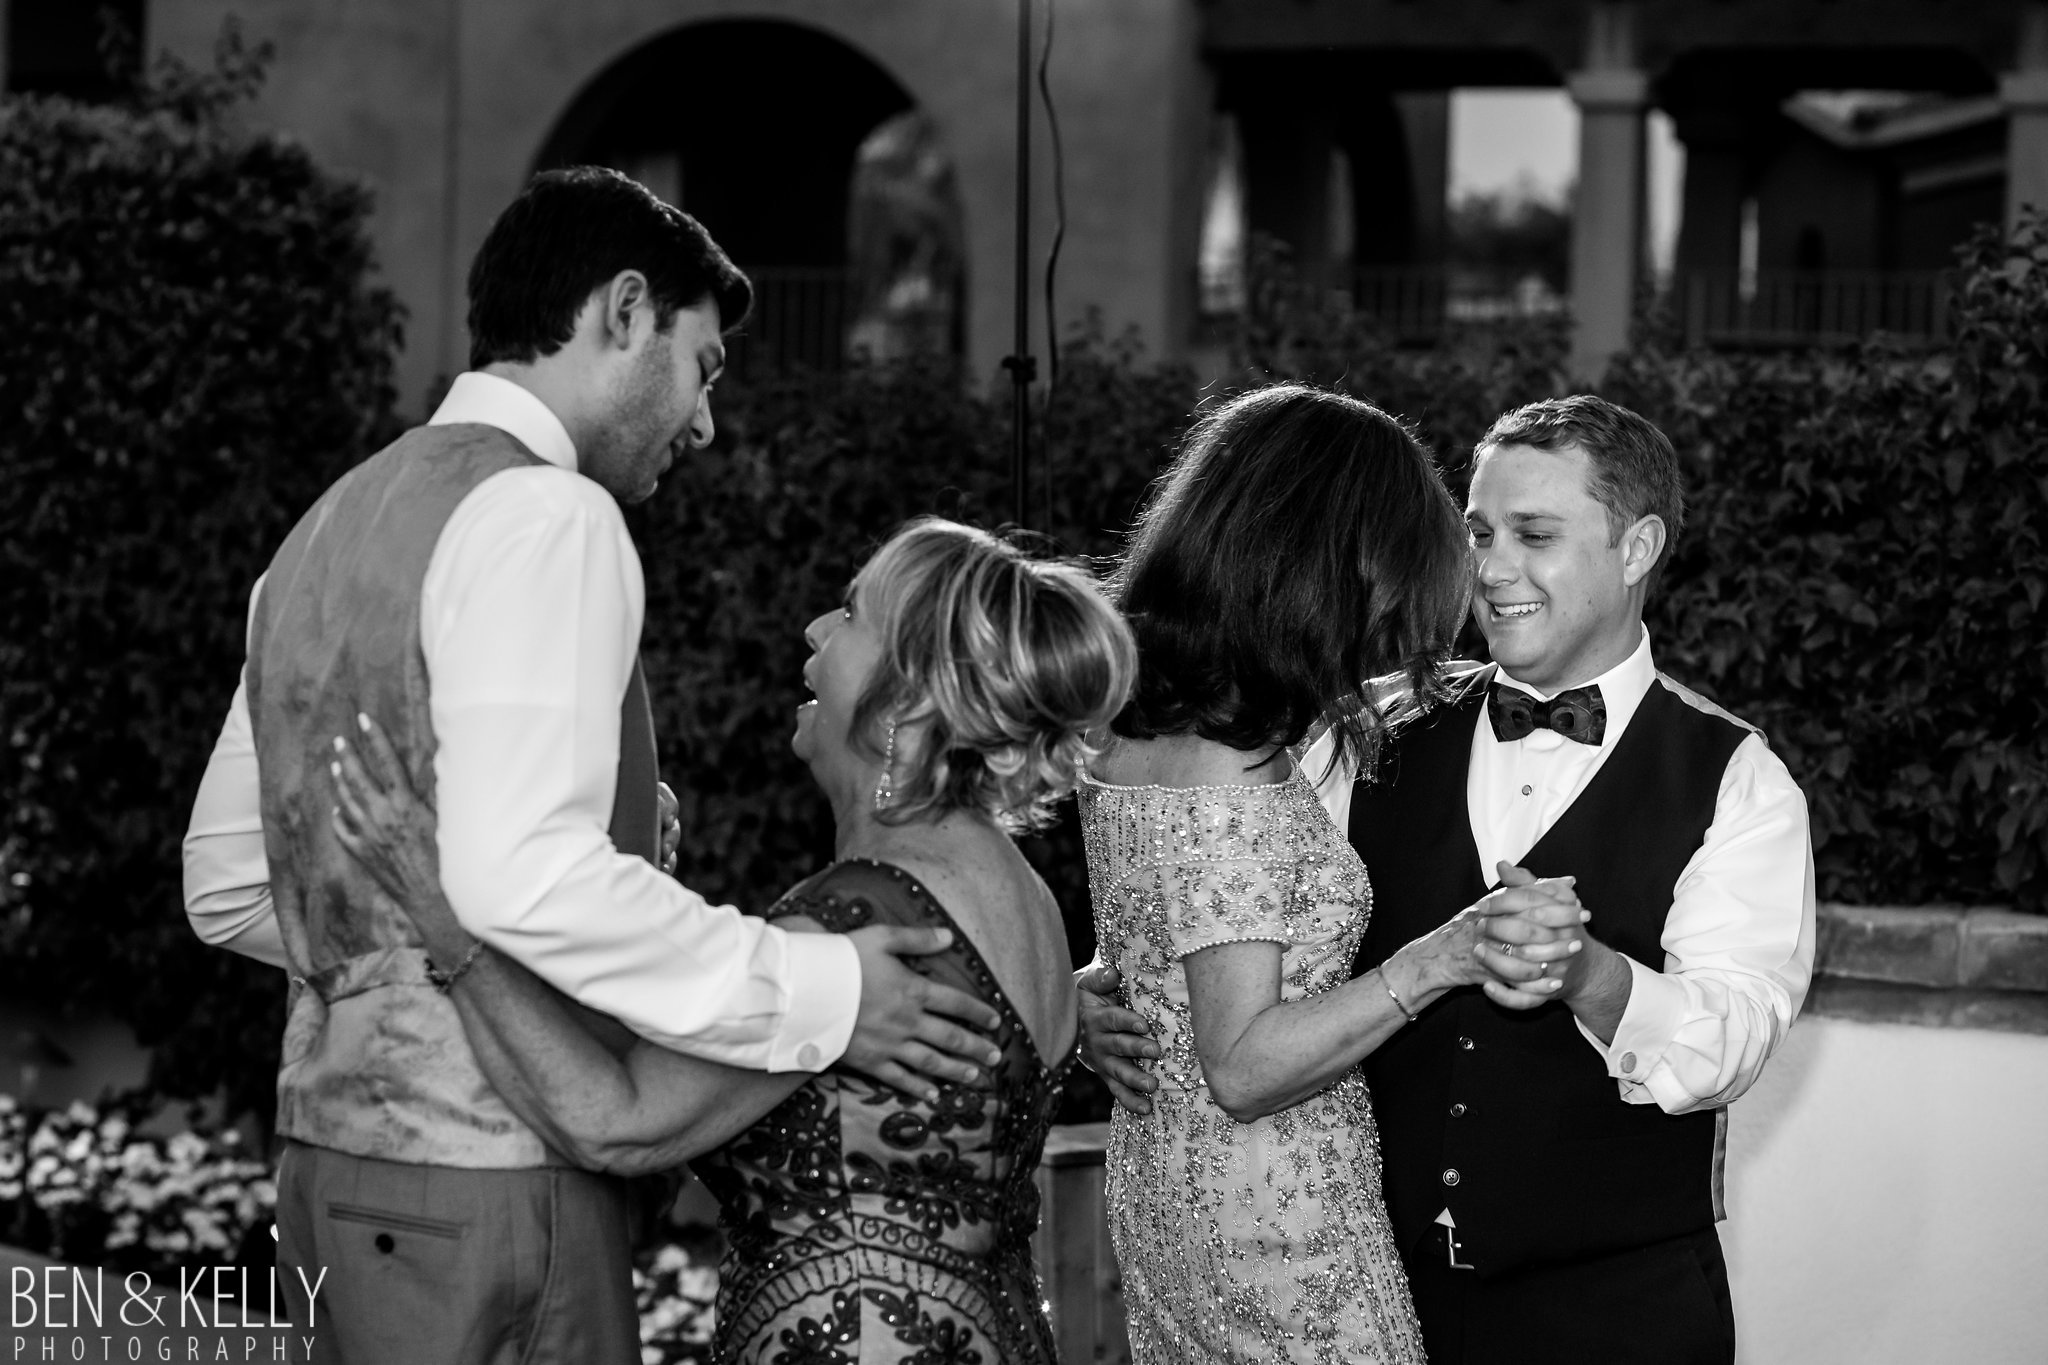 34 mother son dance two grooms dance with mom dance with husband mom spouses mom family wedding dance Life Design Events photo by Ben and Kelly Photography.jpg